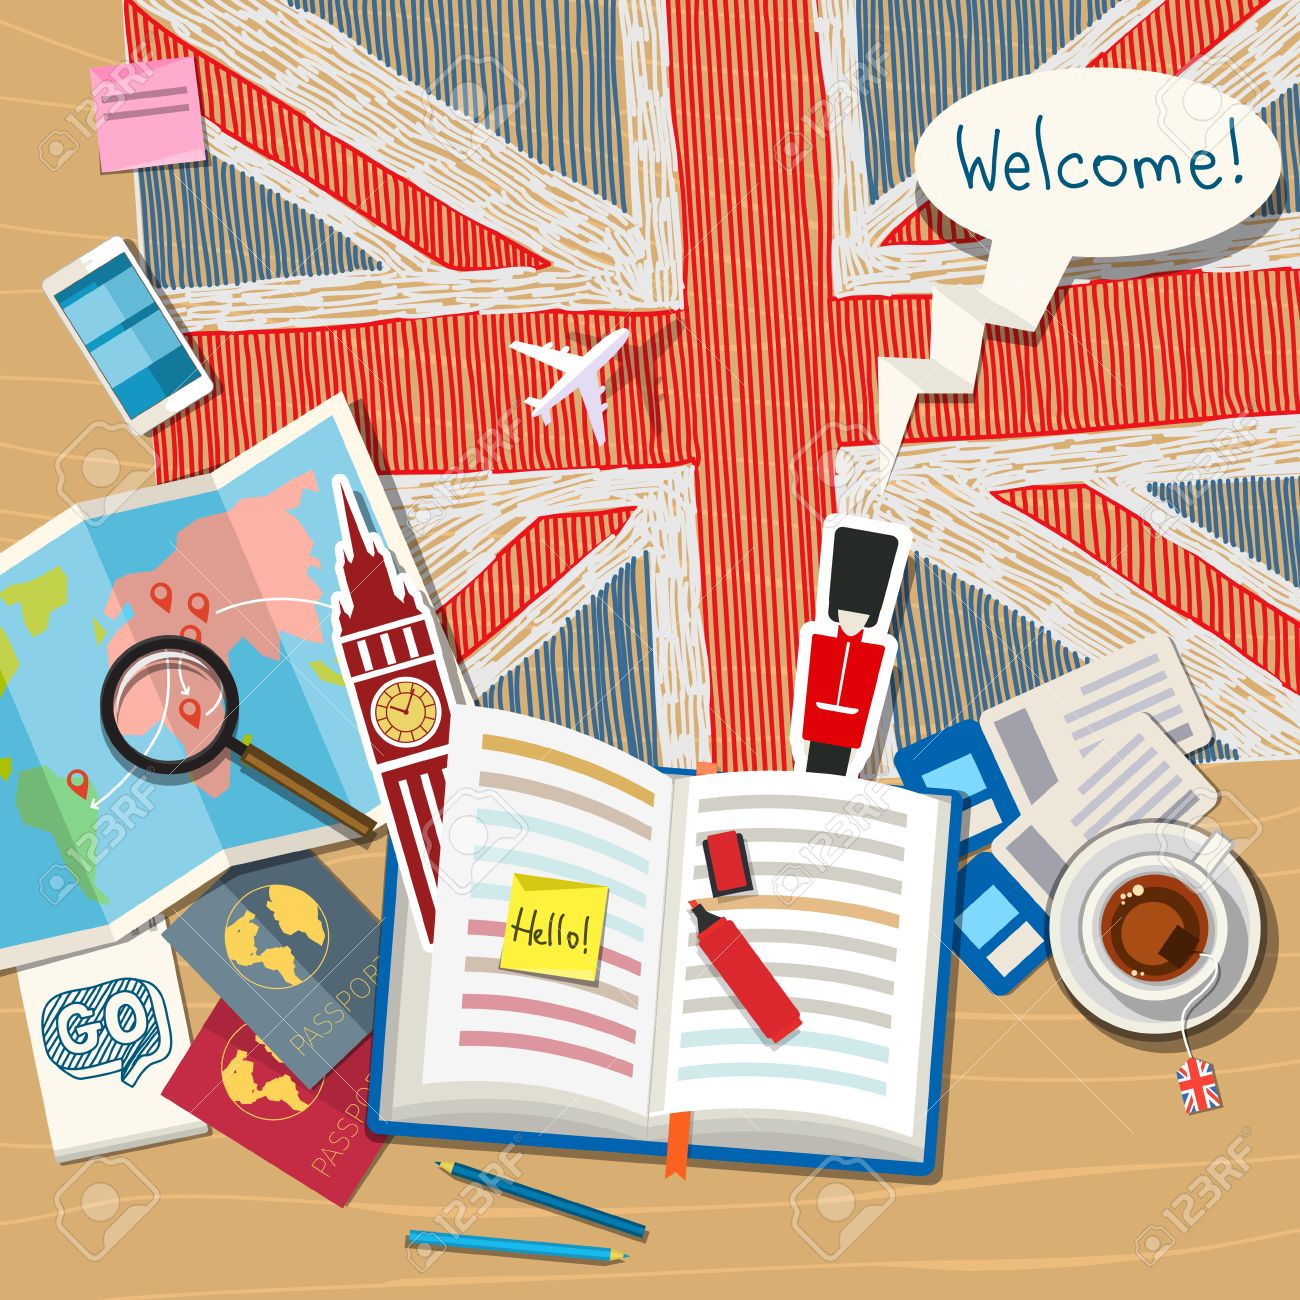 Travel English course for your trips and holidays!